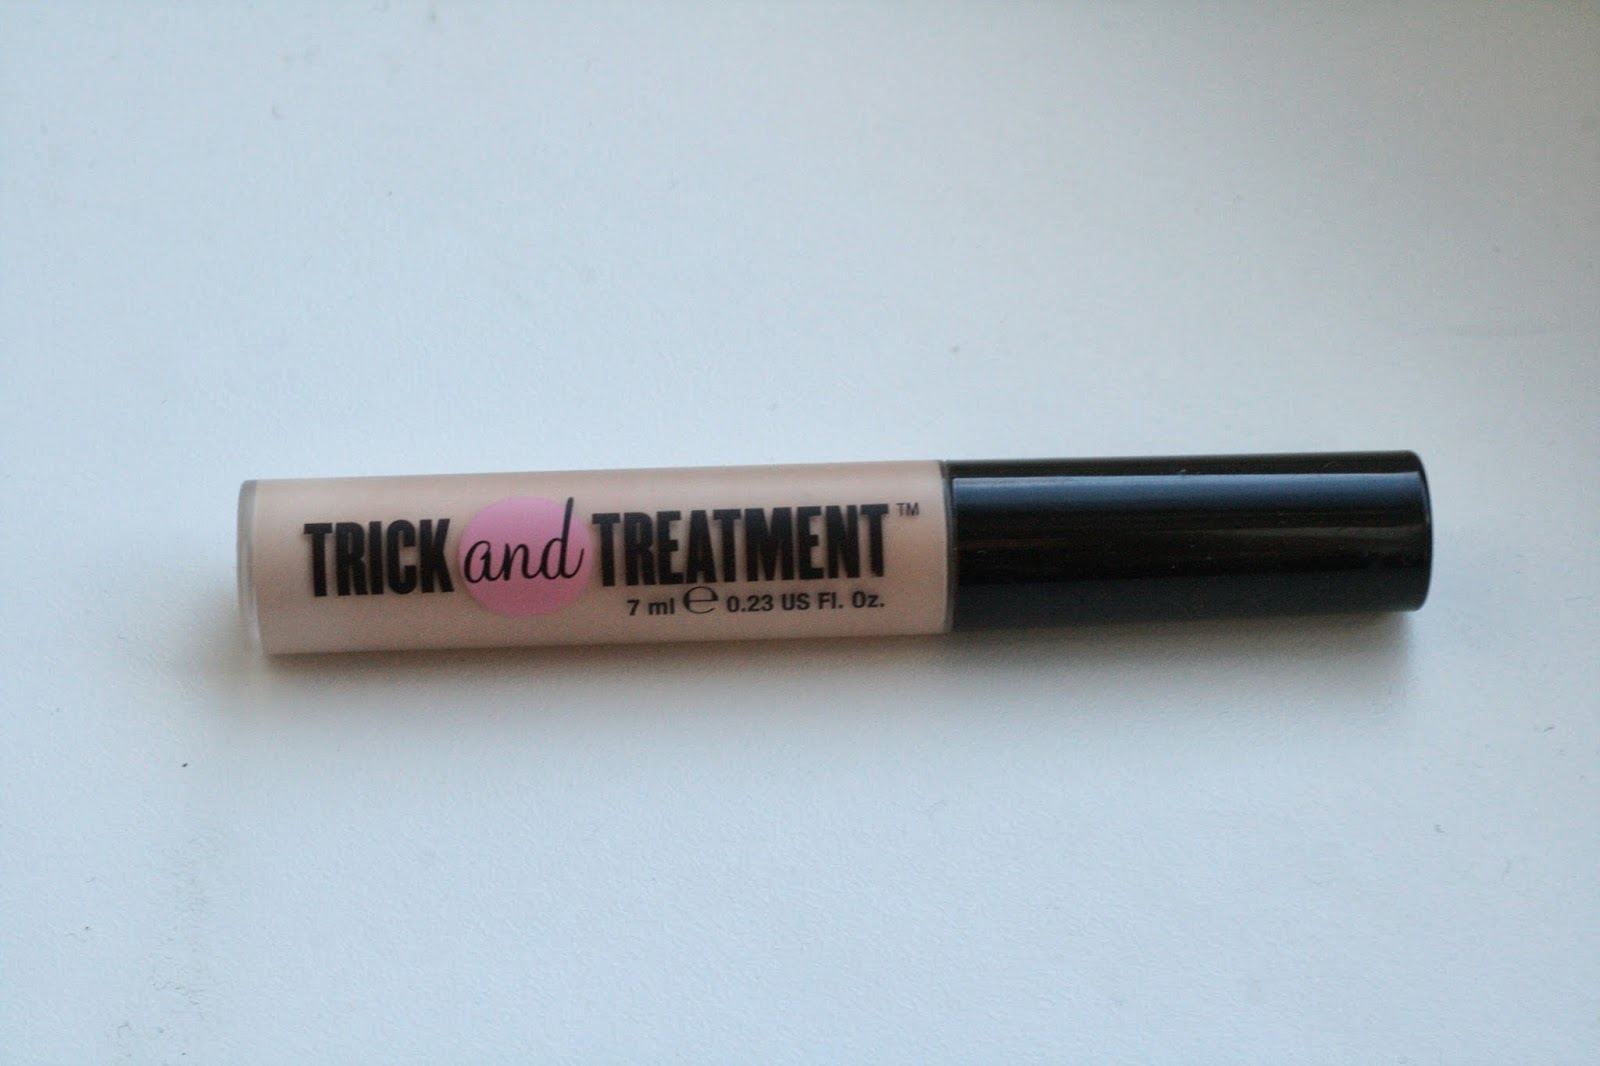 Soap & Glory Trick and Treatment